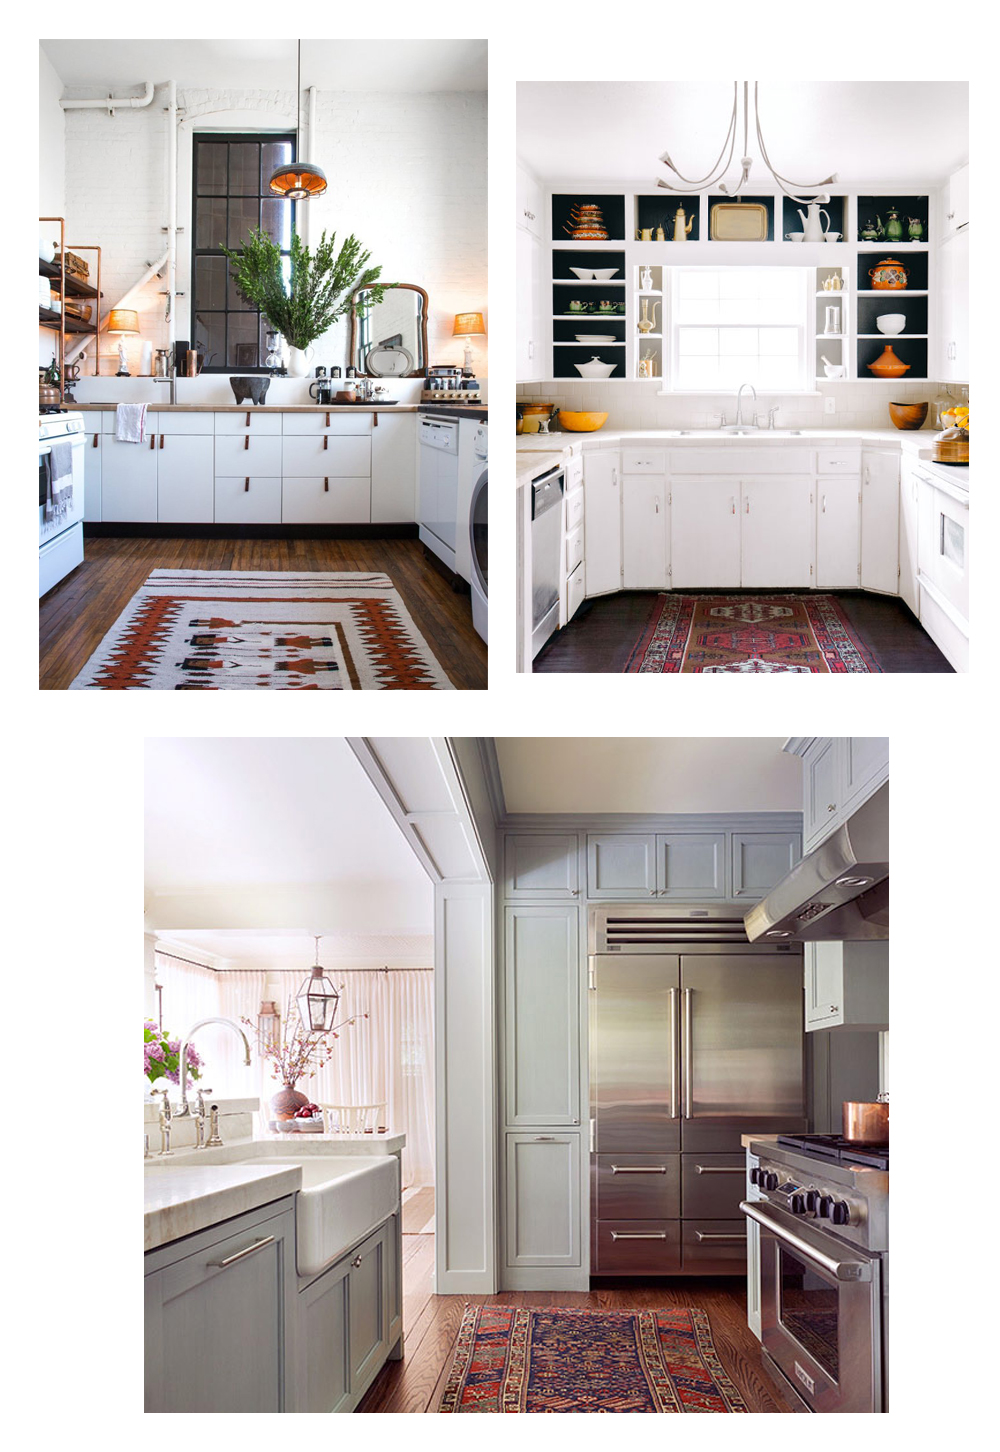 Vintage, Persian, Kilim & Turkish Rugs in the Kitchen | Home Decor ...